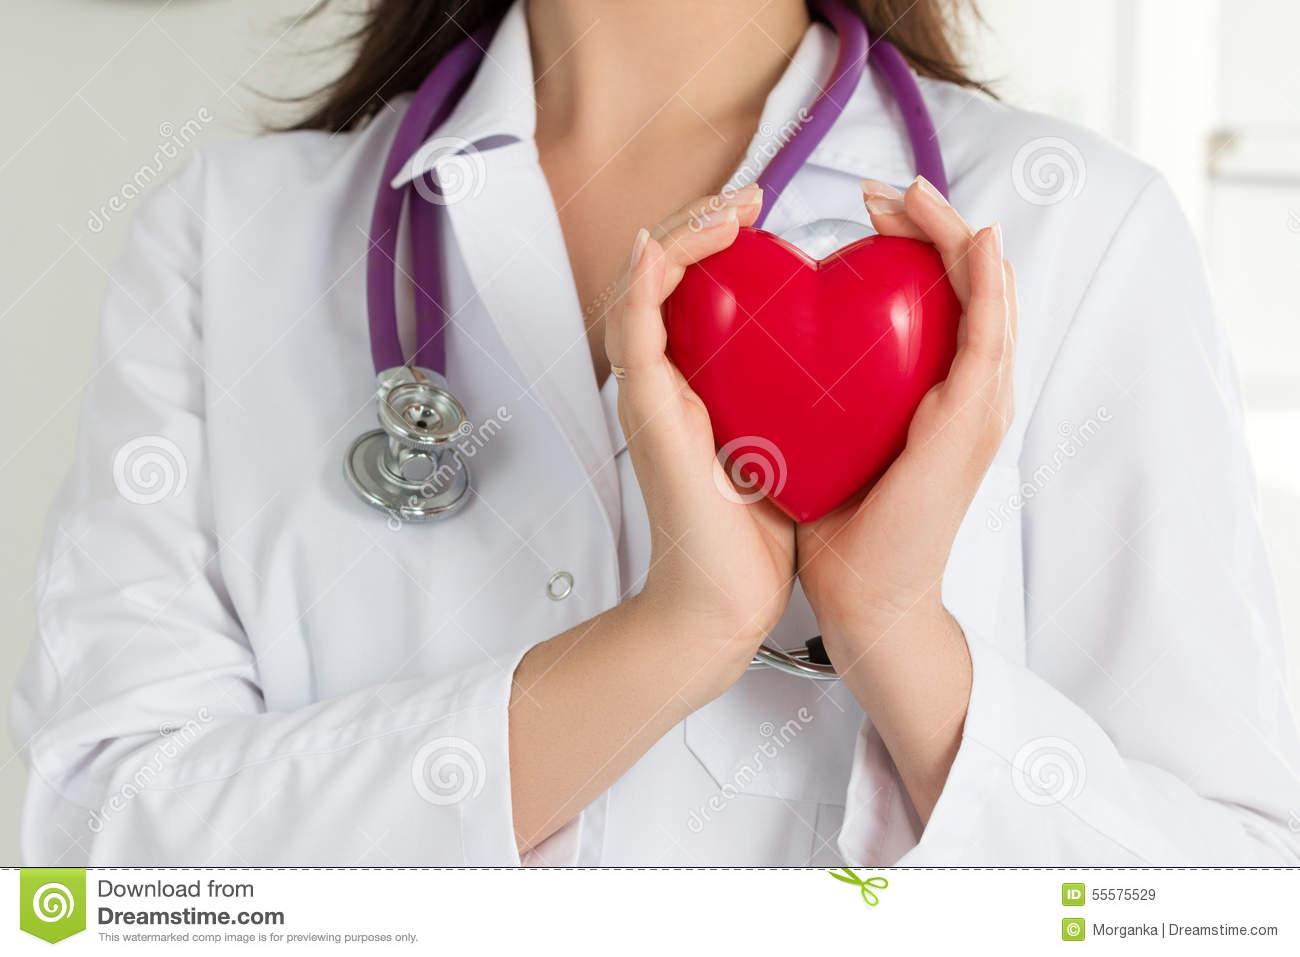 Female doctors s hands holding red heart